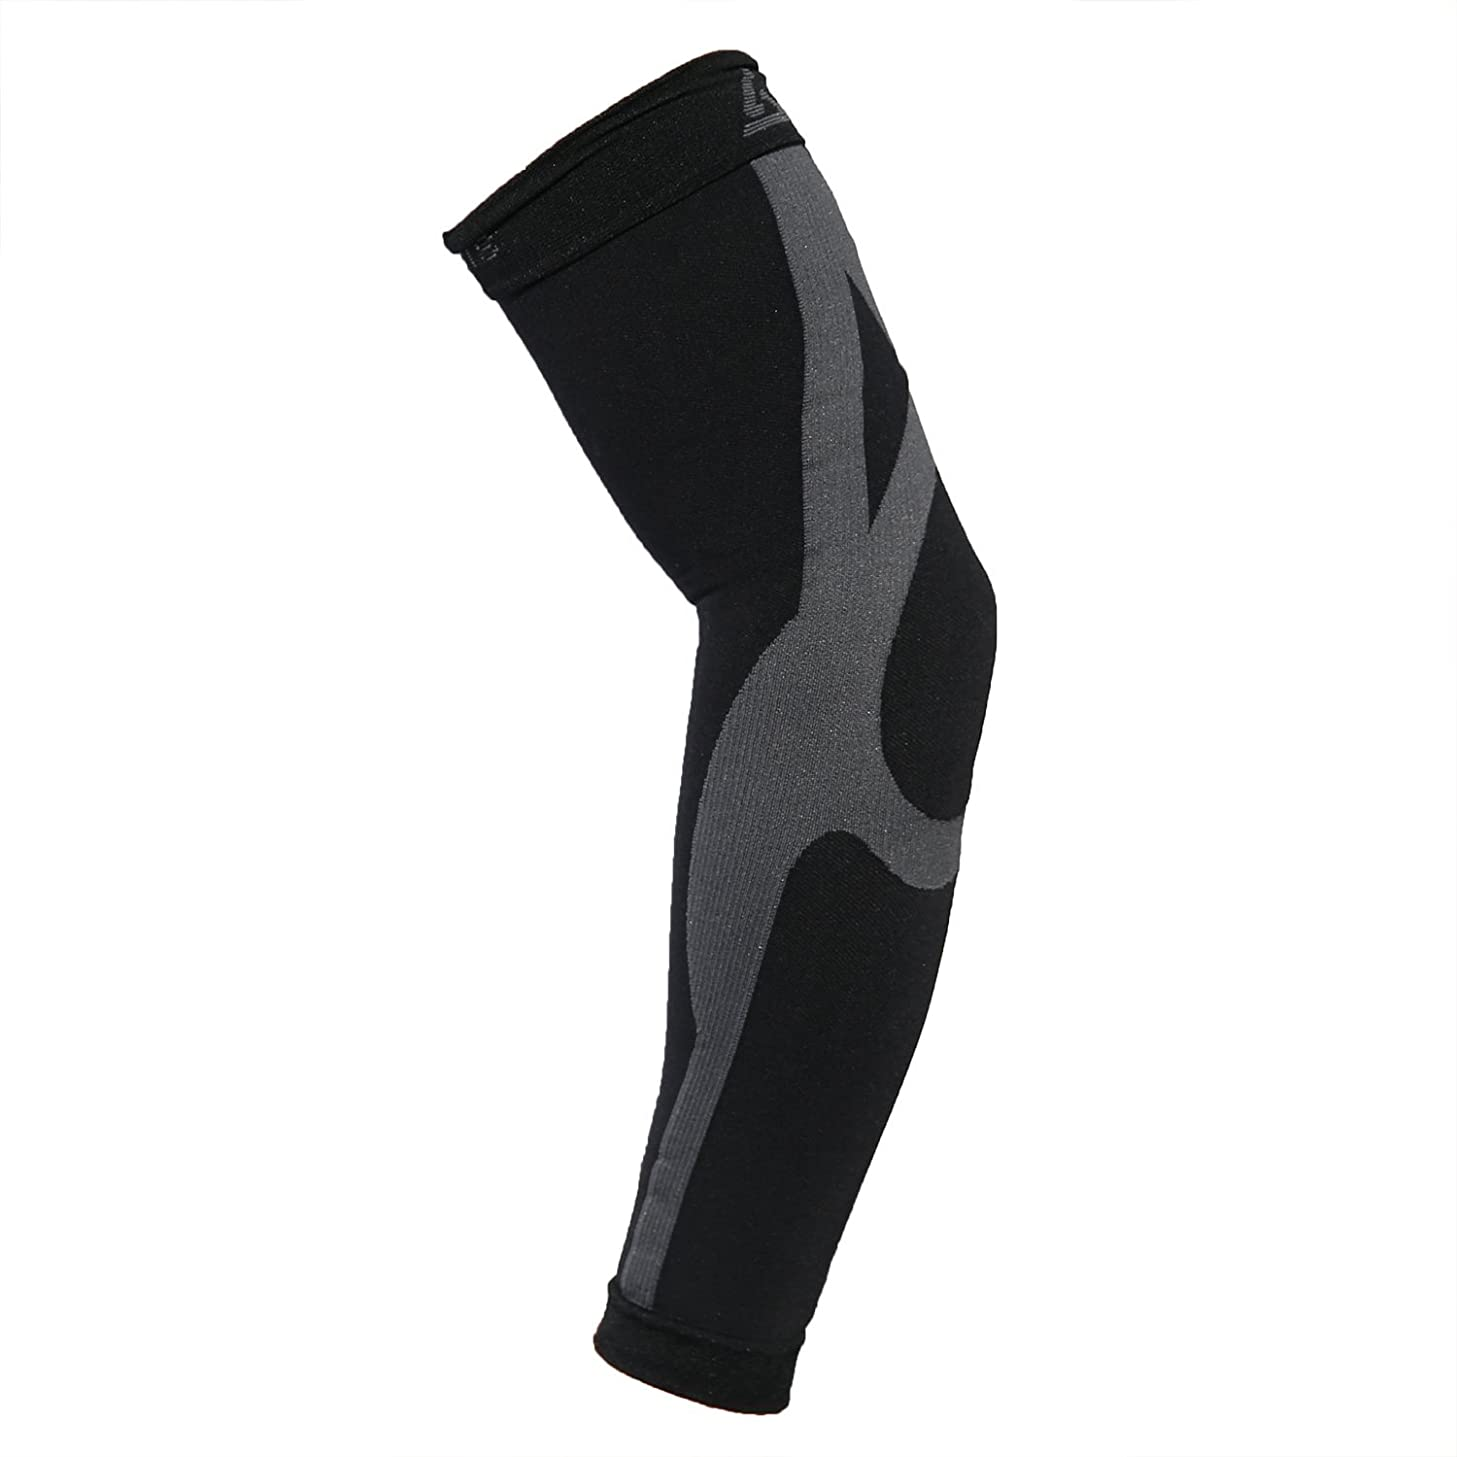 Arm Sleeves with Enhance Graduated Compression | 20-30mmHG | Improves and Maintains Blood Circulation | Relieves Pain & Supports Muscles and Joints | 1 or 2 Sleeves